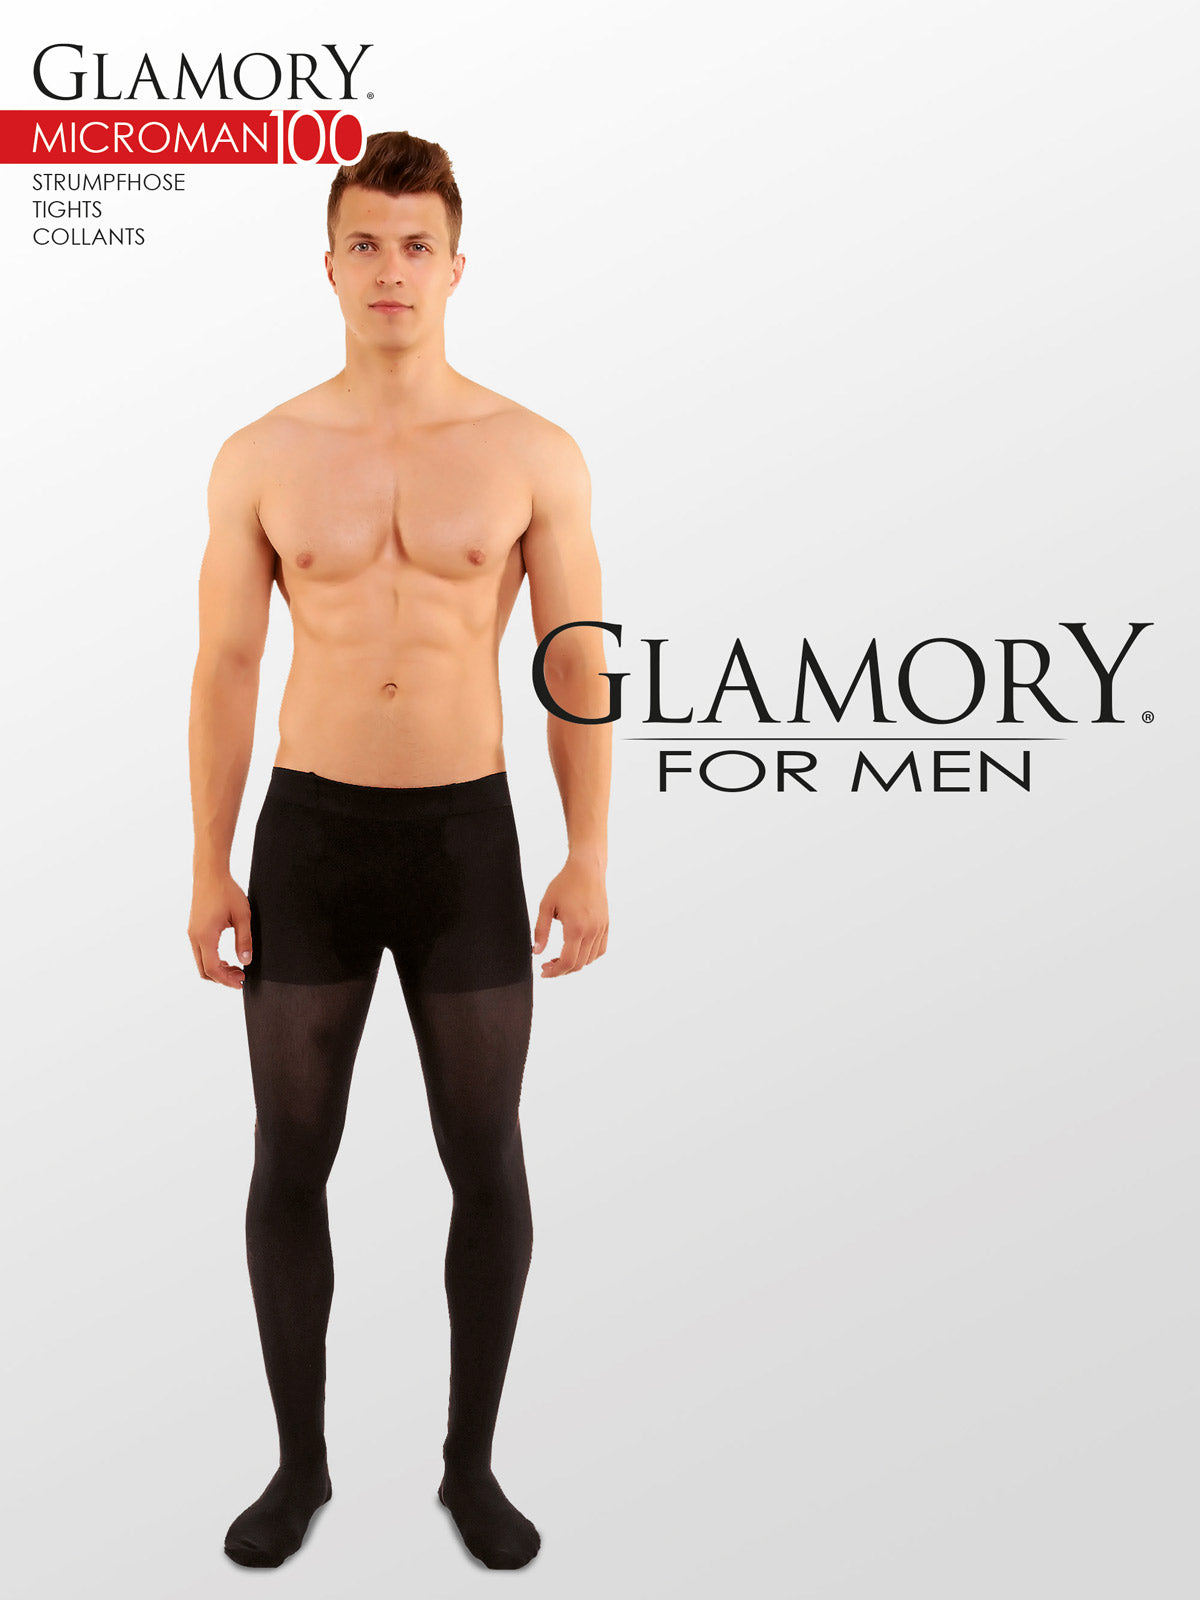 Glamory Microman 100 Tights